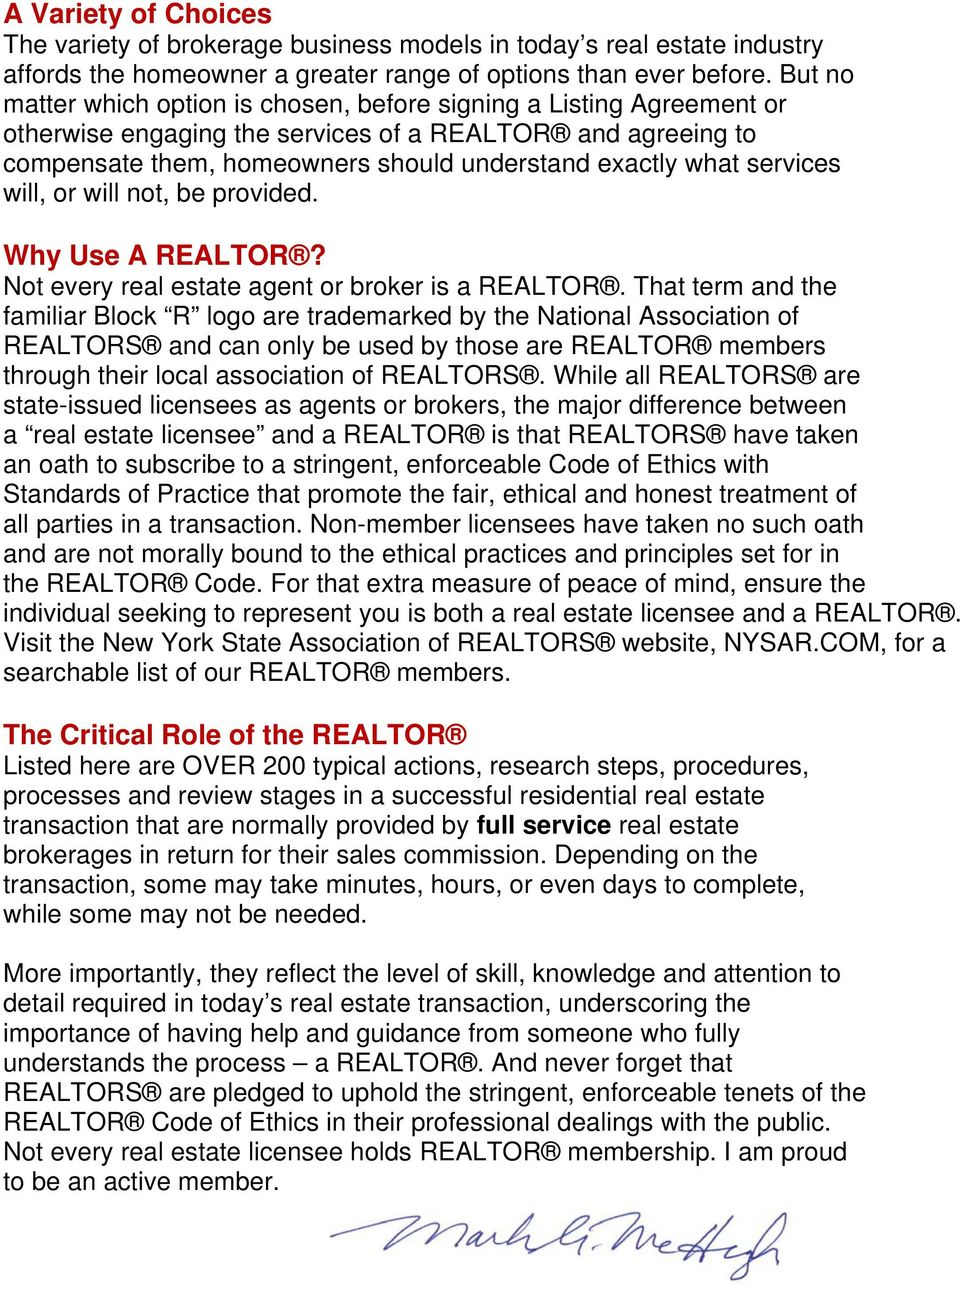 services will, or will not, be provided. Why Use A REALTOR? Not every real estate agent or broker is a REALTOR.